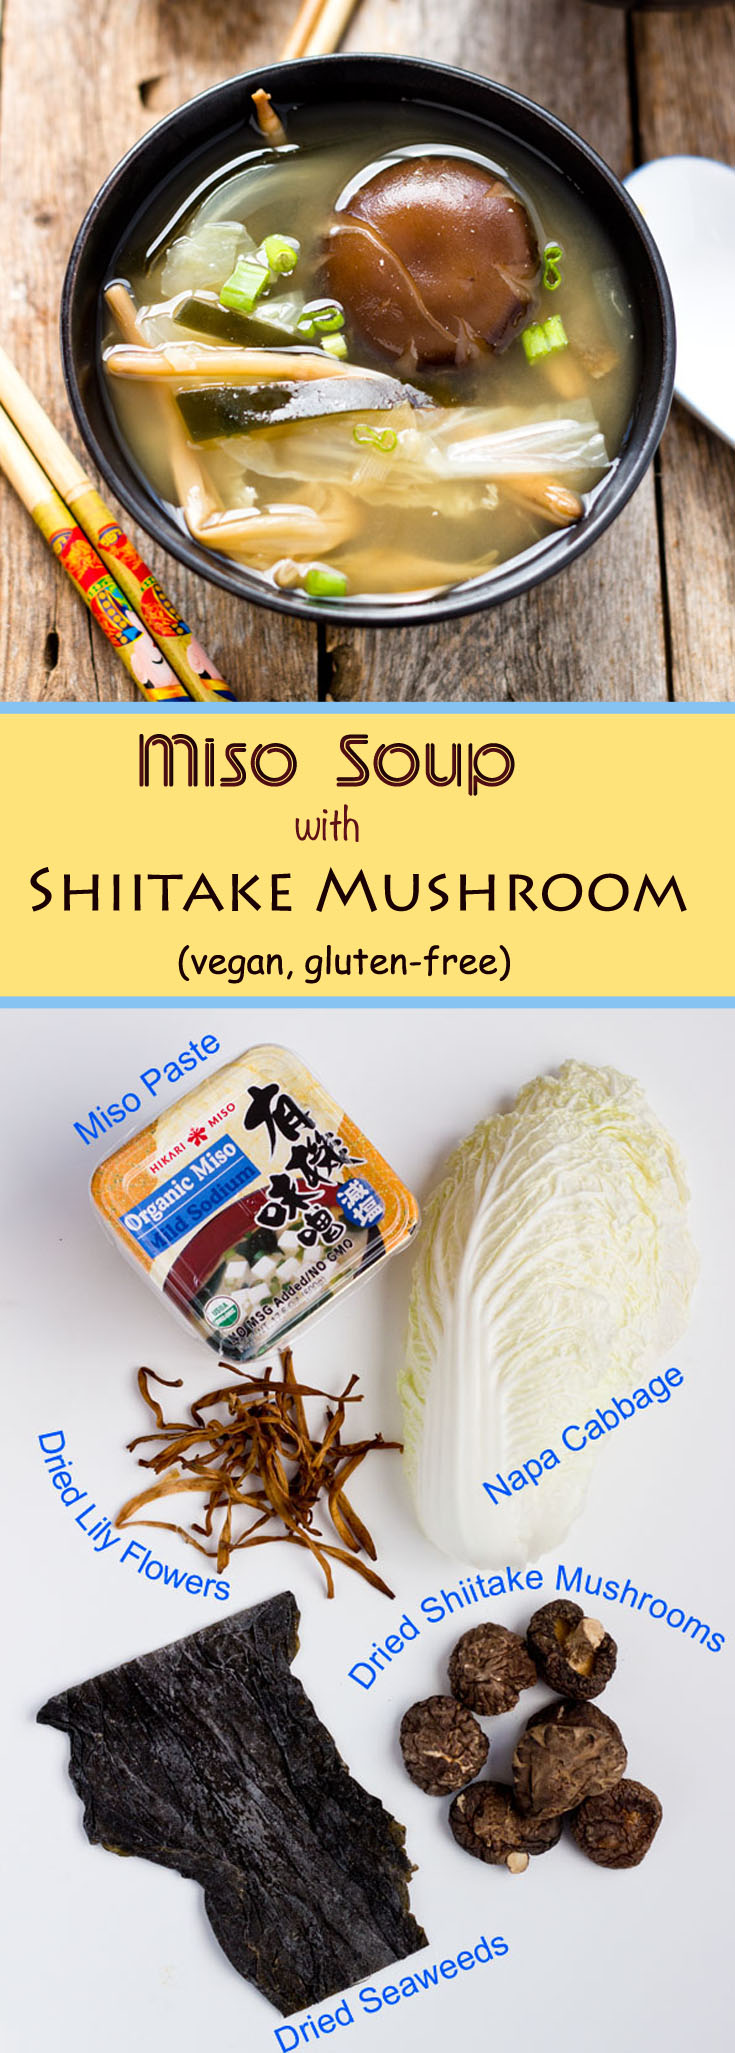 This vegan, gluten-free miso soup is using a homemade shiitake mushroom and kumbo kelp dashi as the base. The flavor is complete and complex. (#vegan #gltuenfree #JapaneseMiso #MisoSoup #glutenfreevegan #glutenfreebreakfast #AsianRecipe #soup)